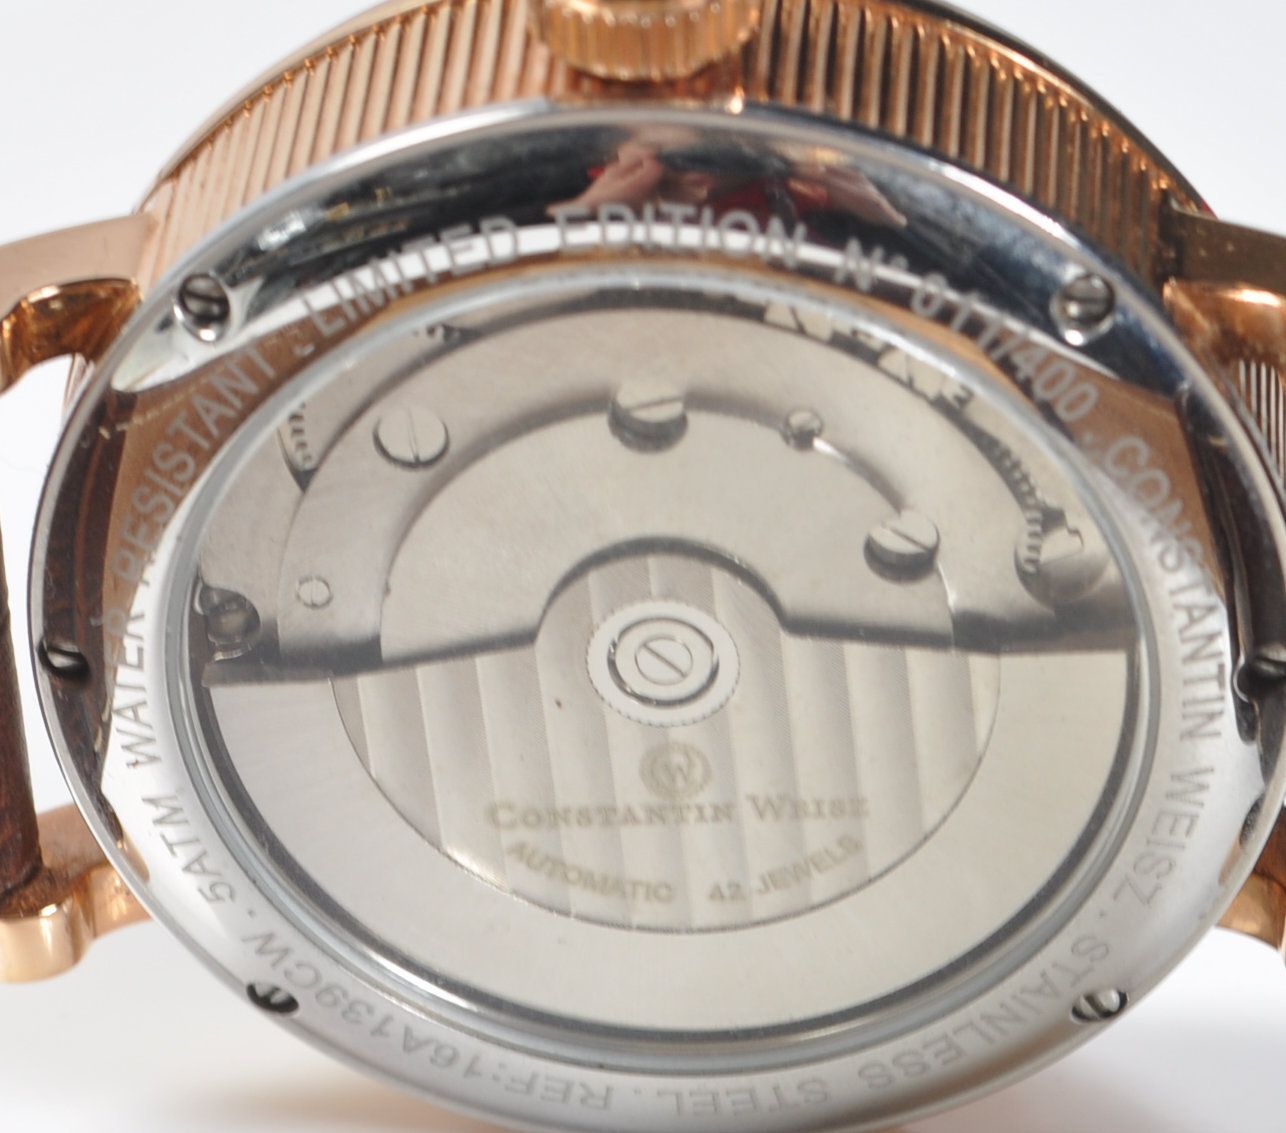 CONSTANTIN WEISZ DOUBLE HEART AUTOMATIC WRISTWATCH - Image 5 of 7